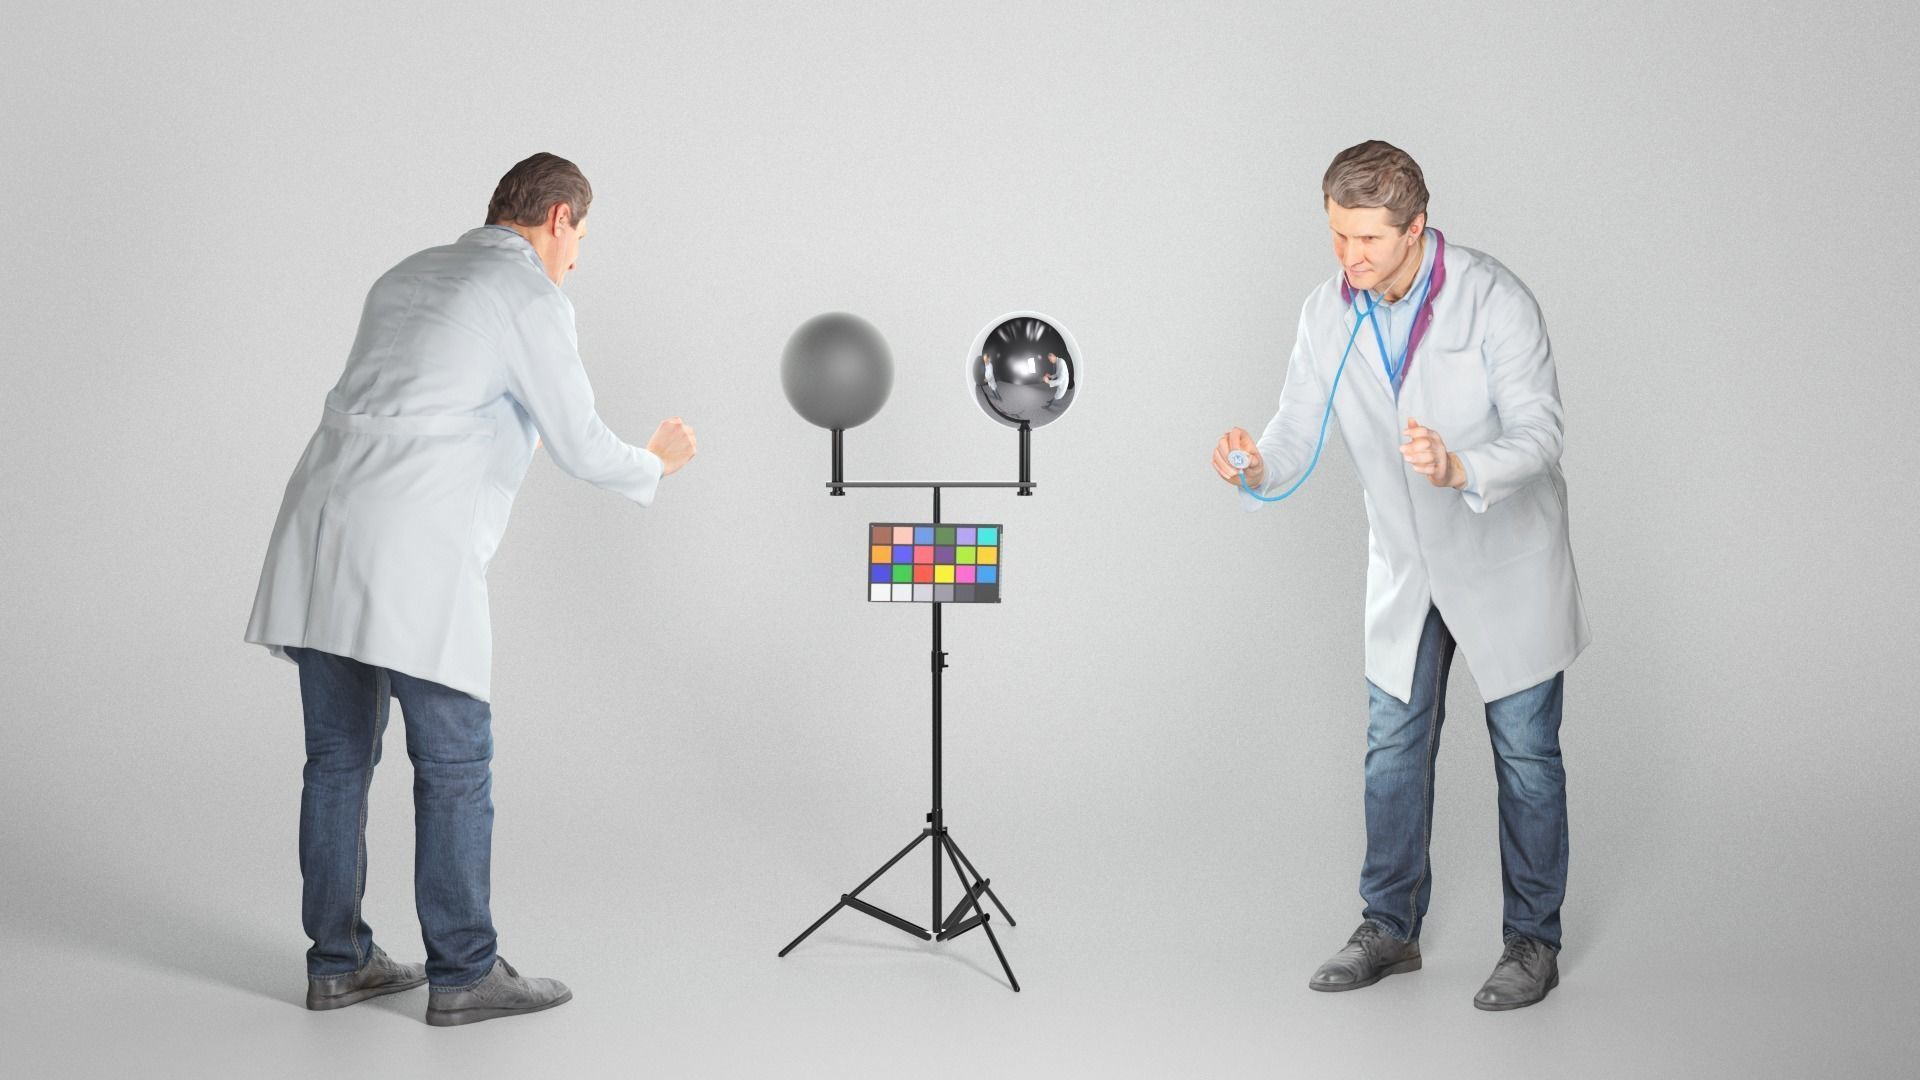 Medical doctor is using a stethoscope 68